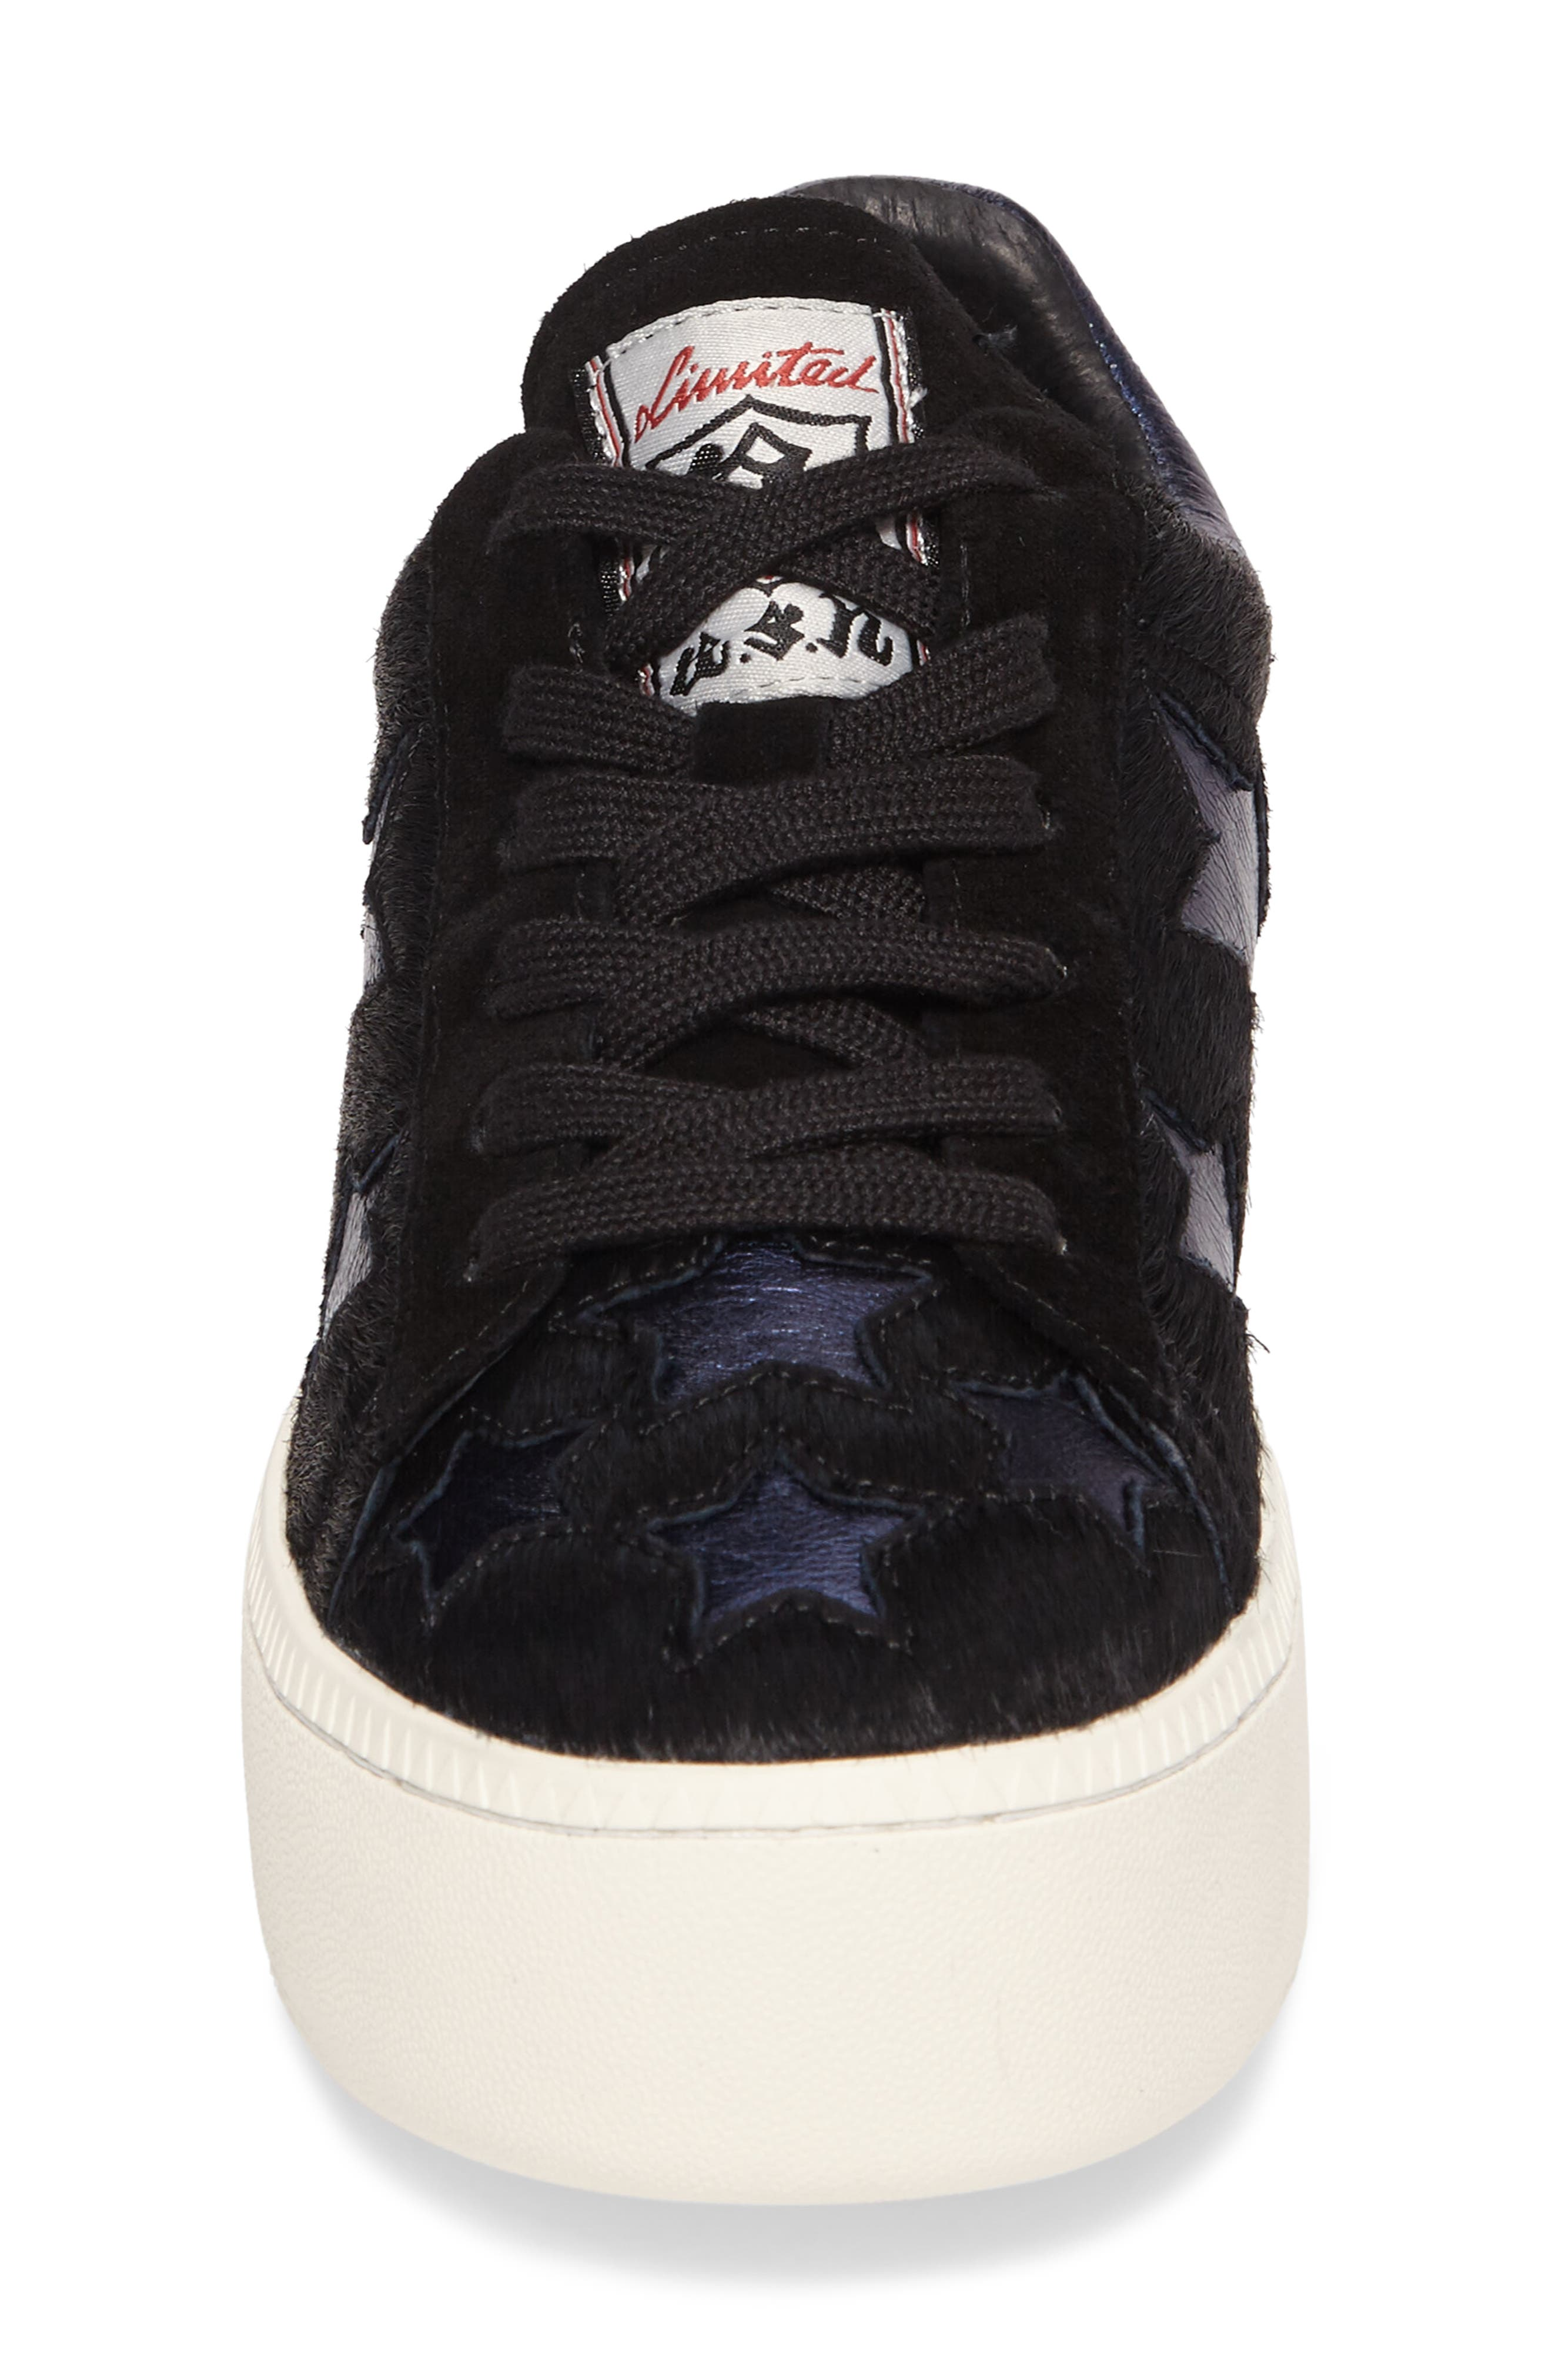 Cult Star Calf Hair Sneaker,                             Alternate thumbnail 4, color,                             Black/ Midnight Leather